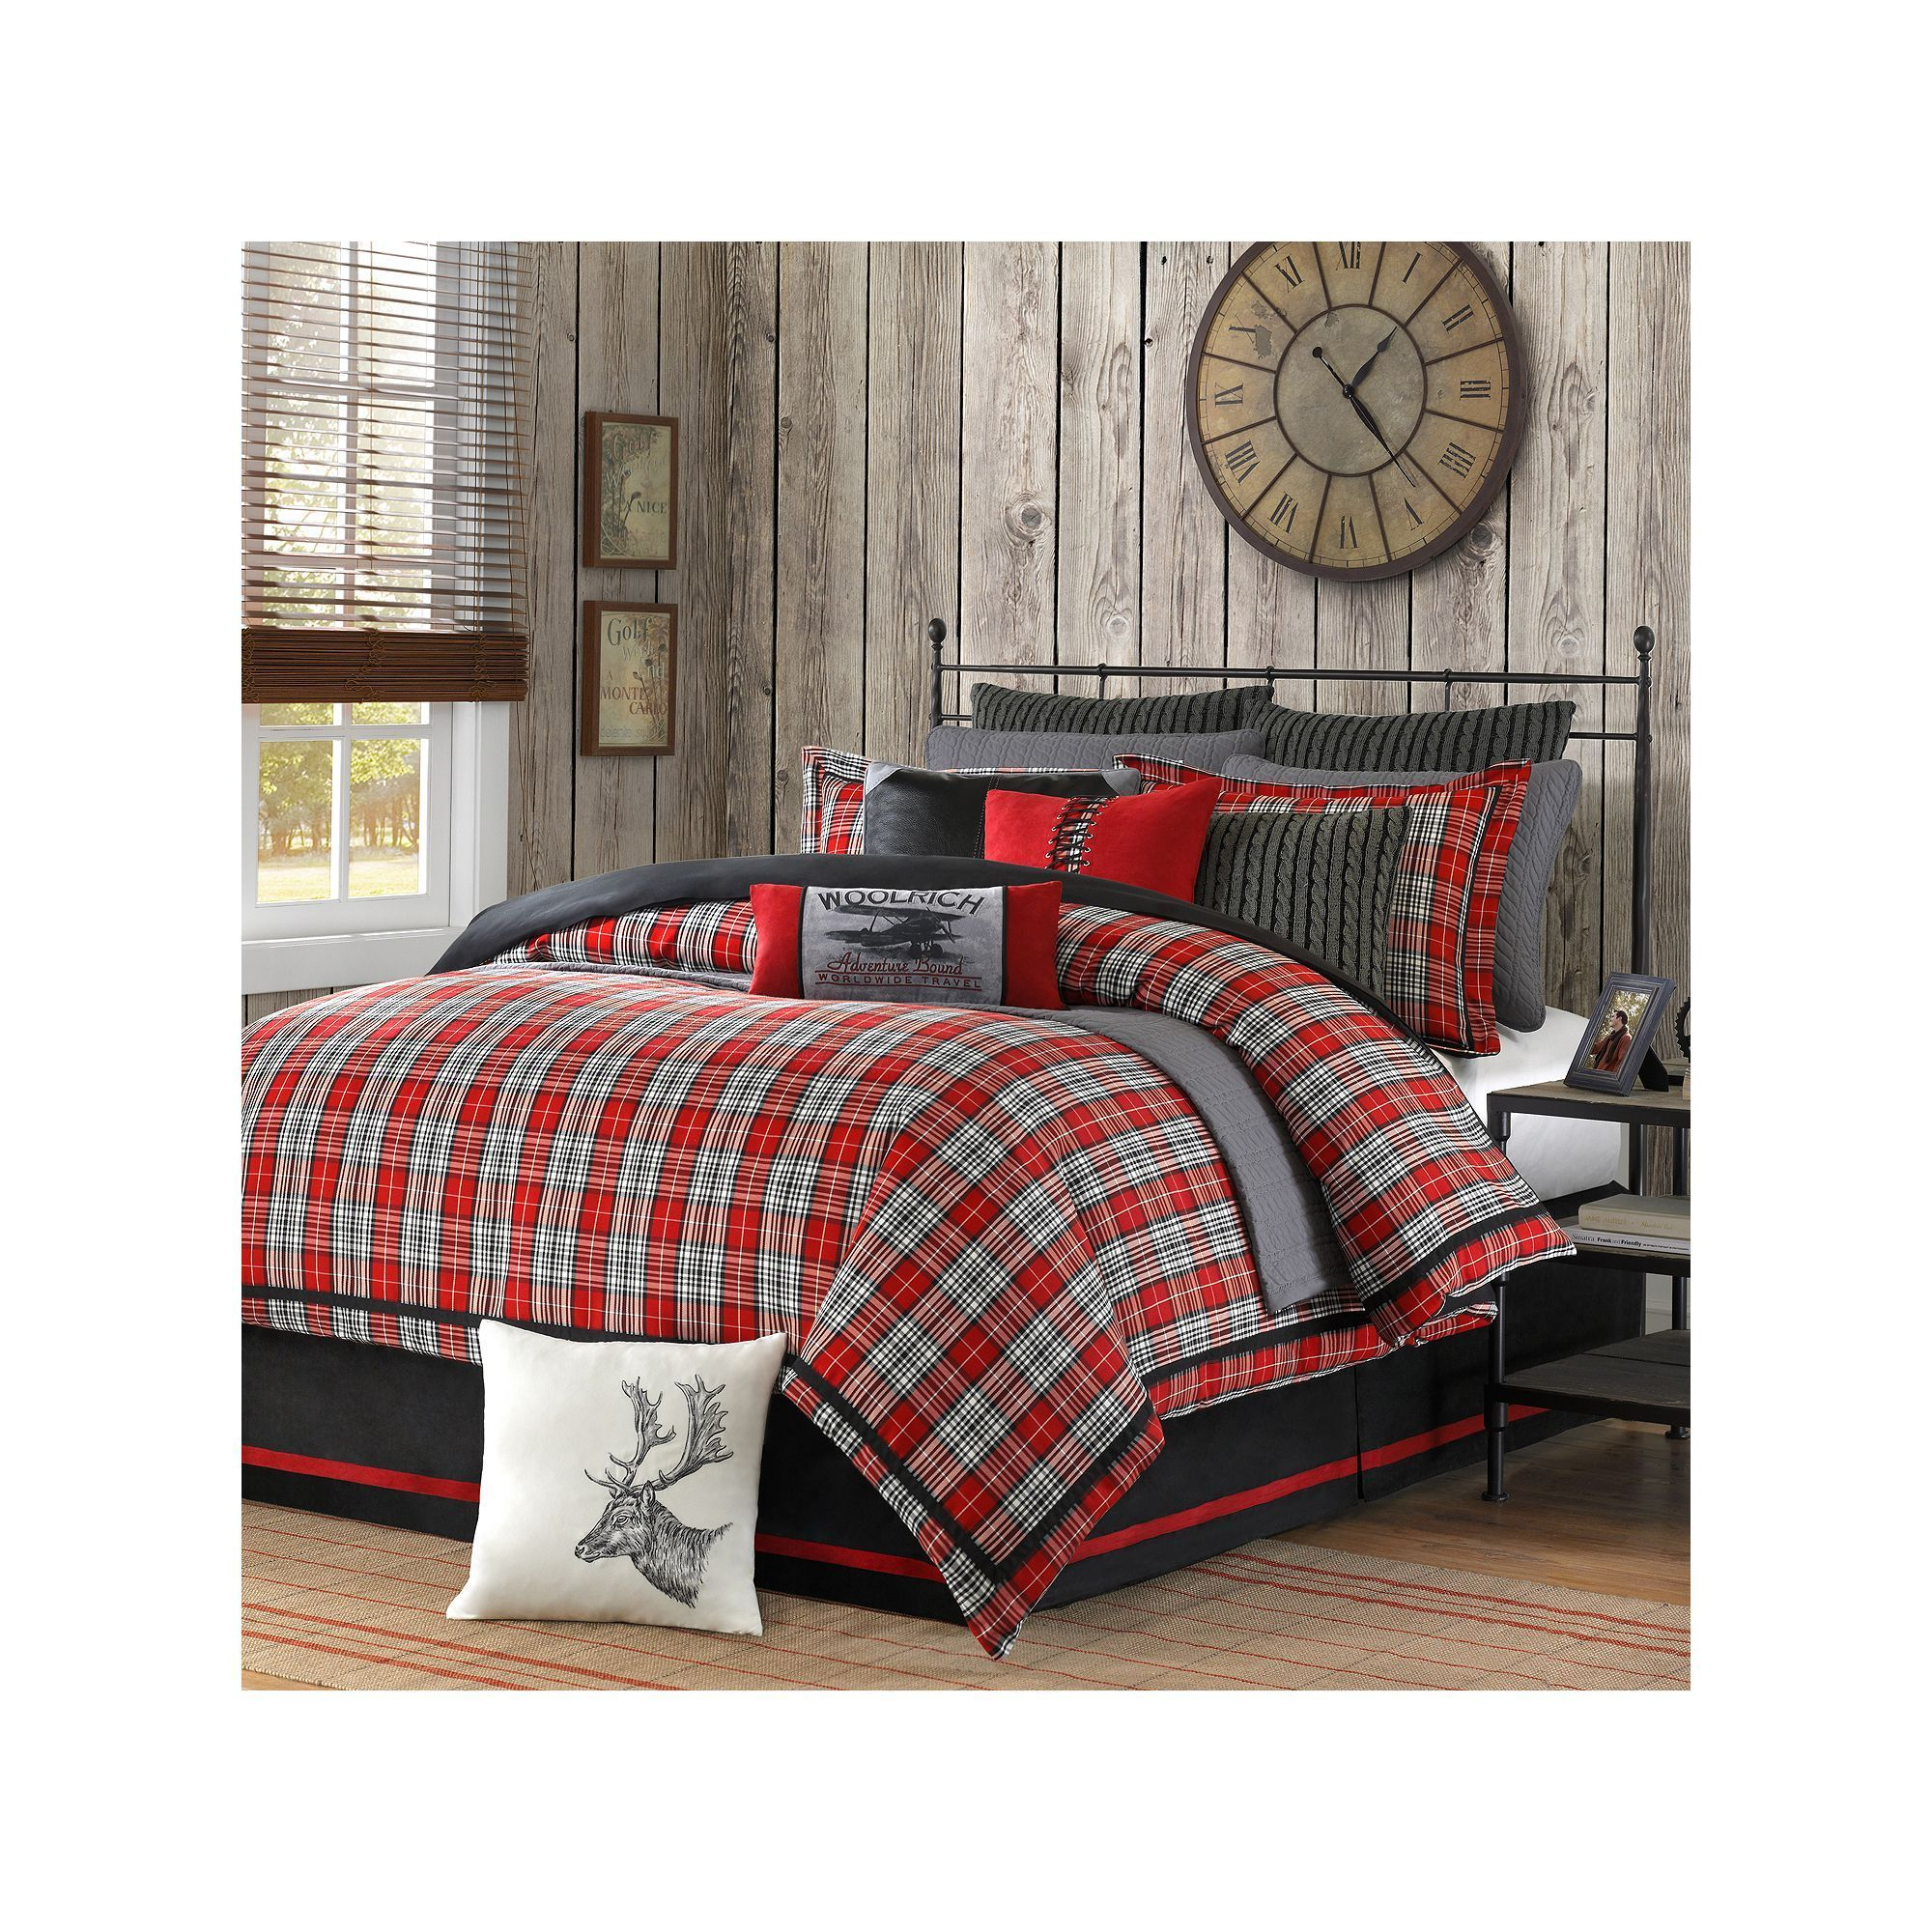 Woolrich Williamsport Comforter Set In 2019 Products